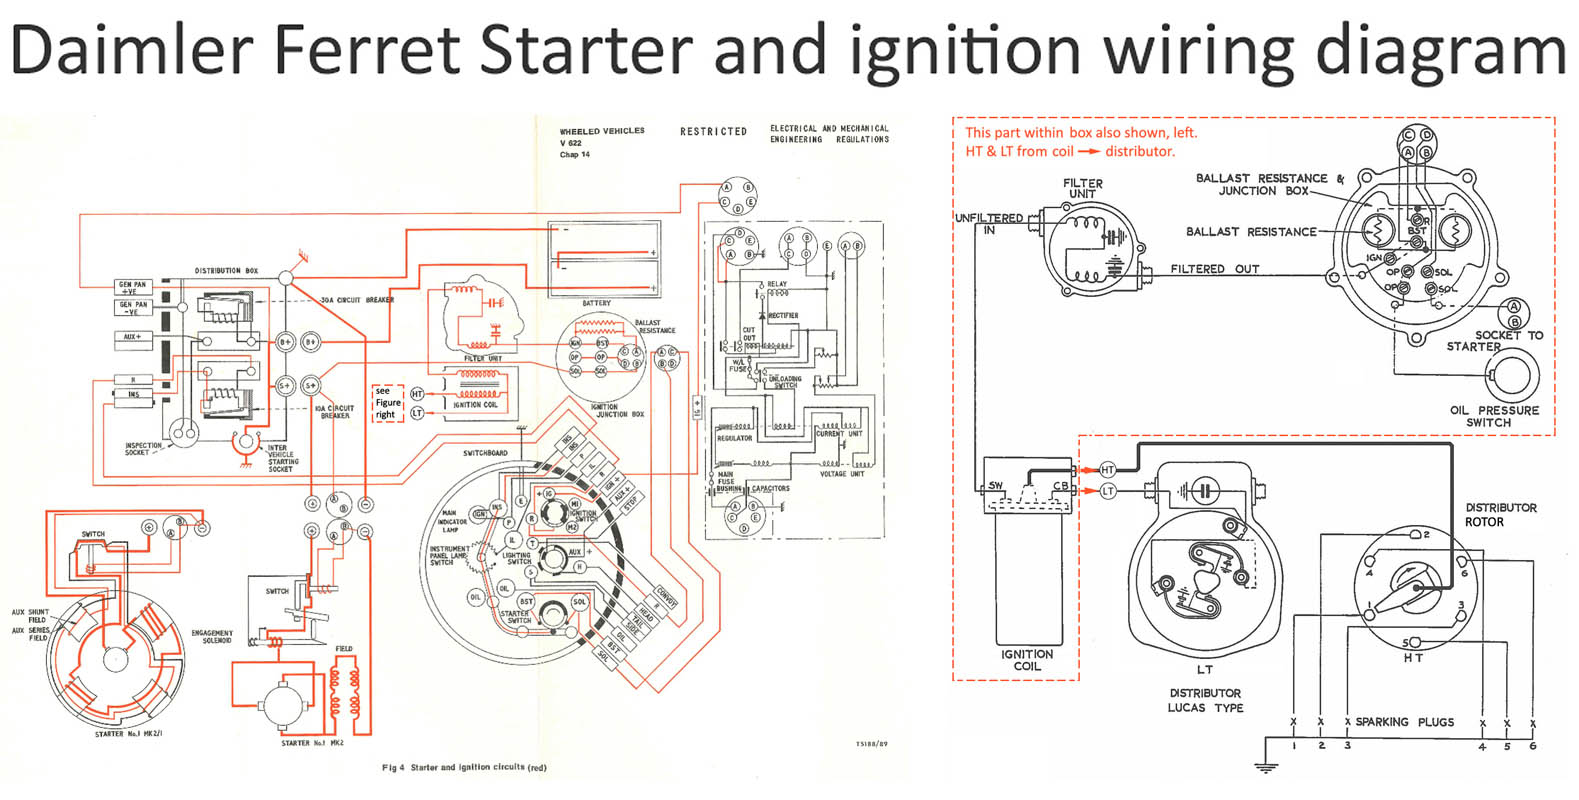 Daimler Ferret starter and ignition wiring diagram jpeg